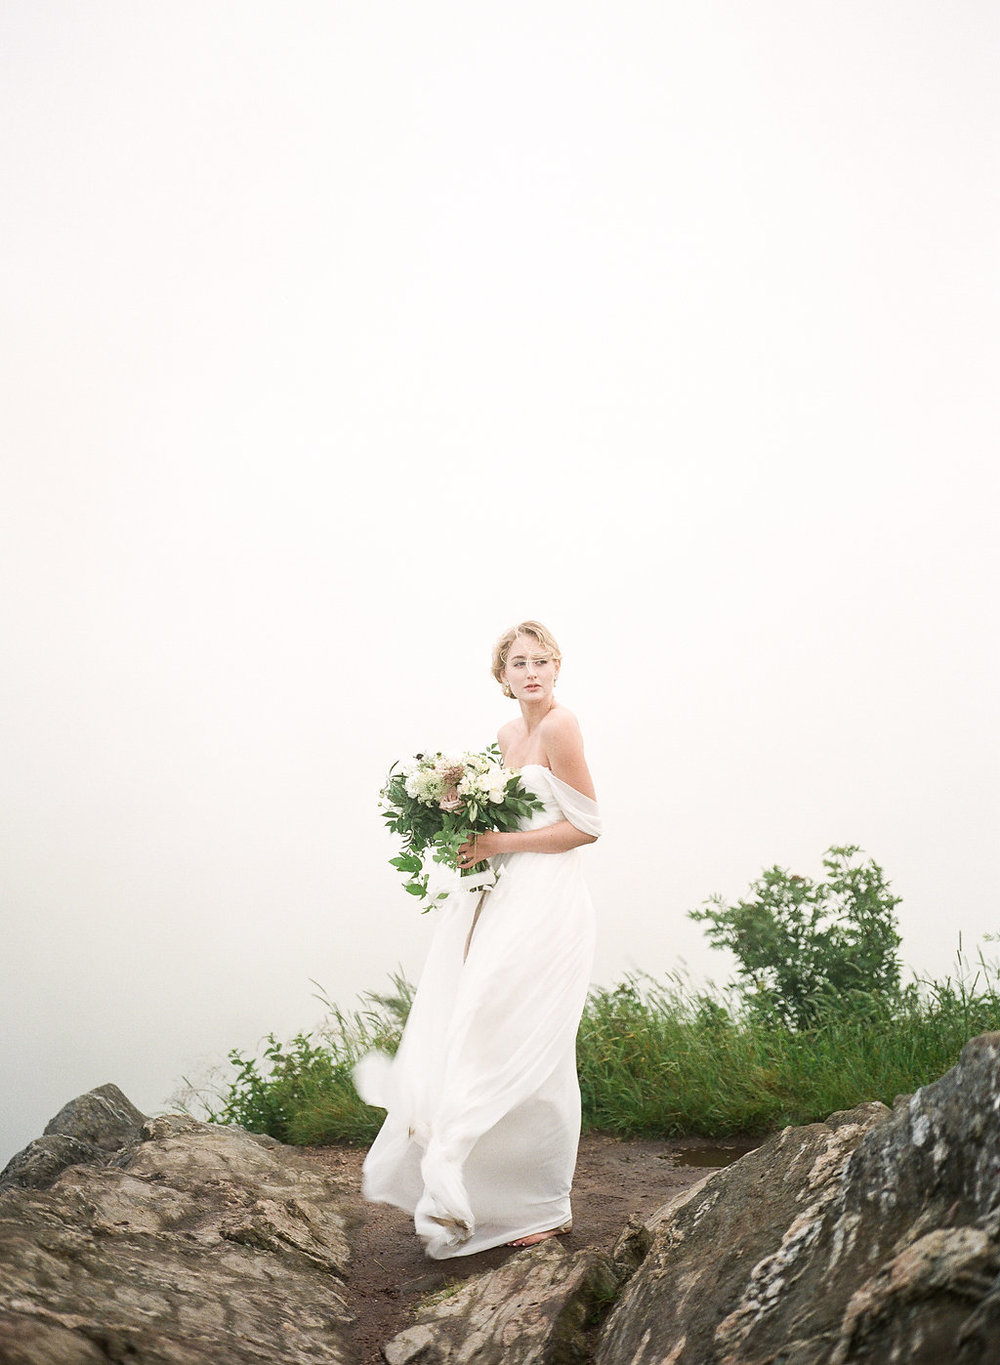 josie-photographs-urban-petals-mountain-wedding-north-carolina-mountain-wedding-ivory-and-beau-bridal-boutique-savannah-wedding-dresses-savannah-bridal-boutique-savannah-wedding-gowns-sarah-seven-lafayette-sarah-seven-wedding-dress-boho-bride-13.jpg